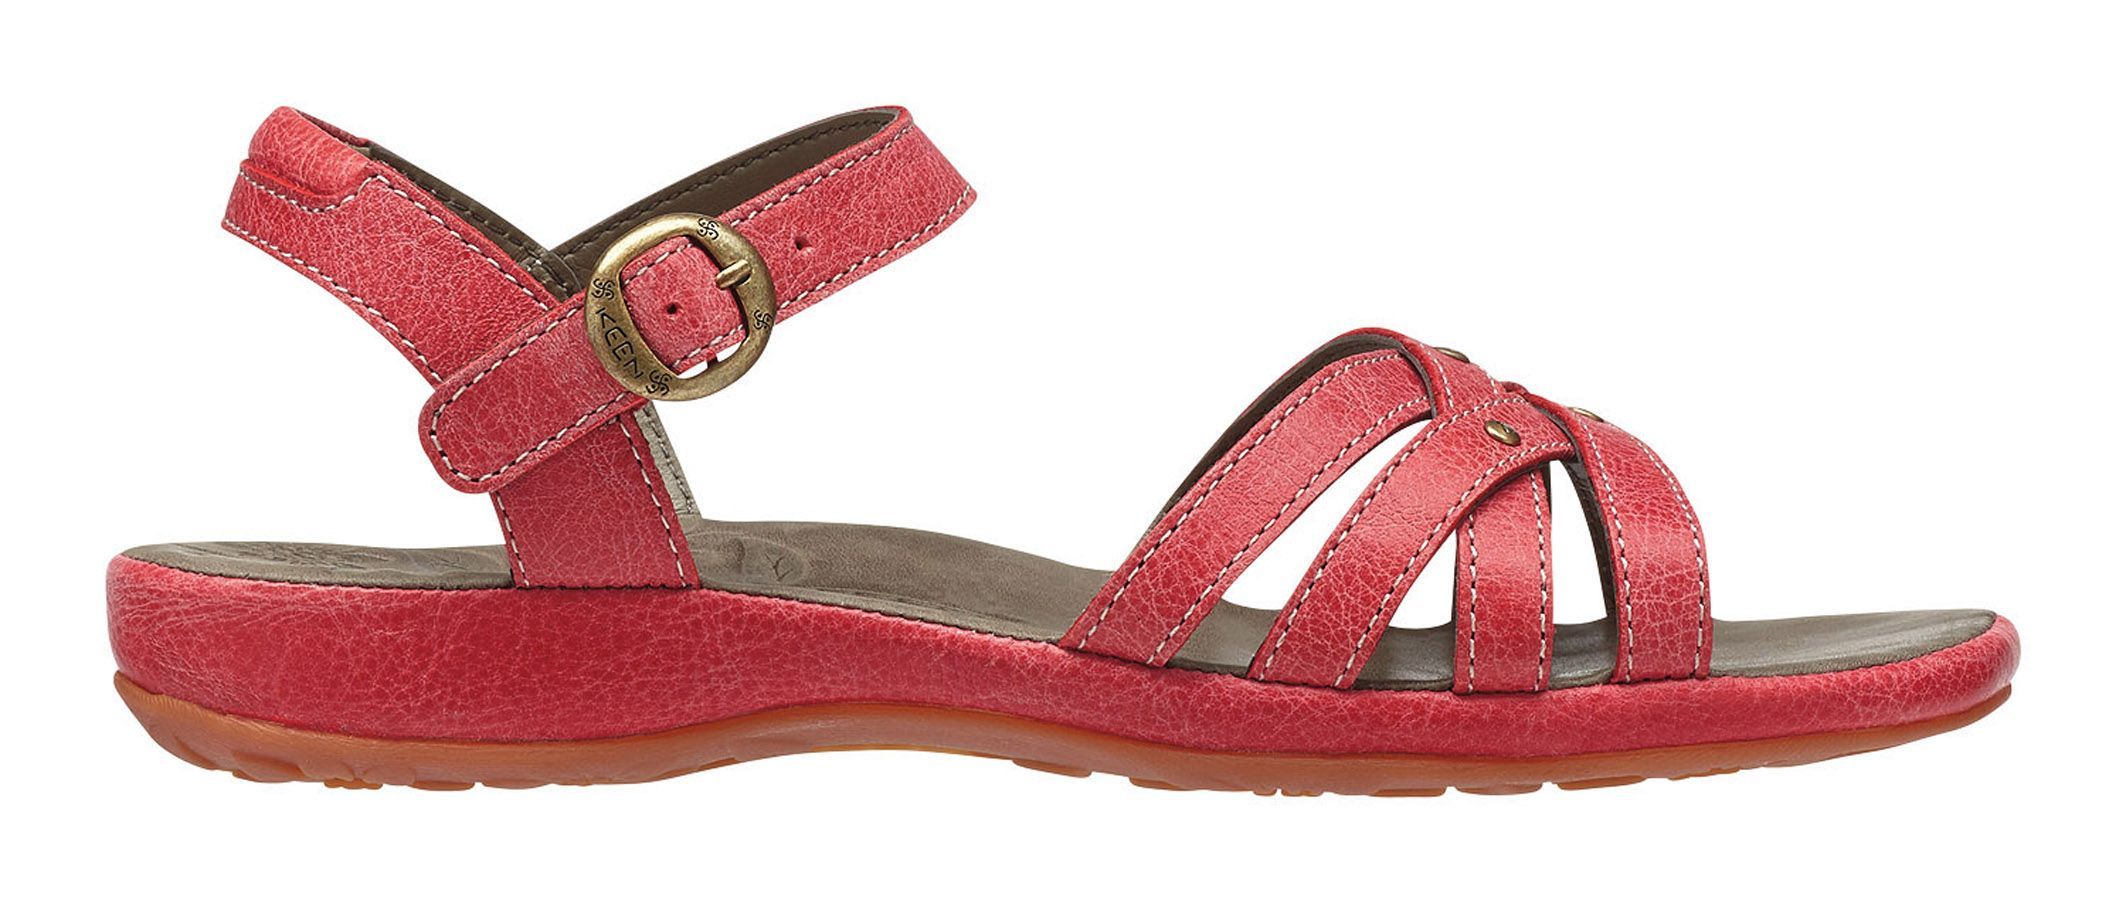 Keen City Of Palms Sandal Ribbon Red-30